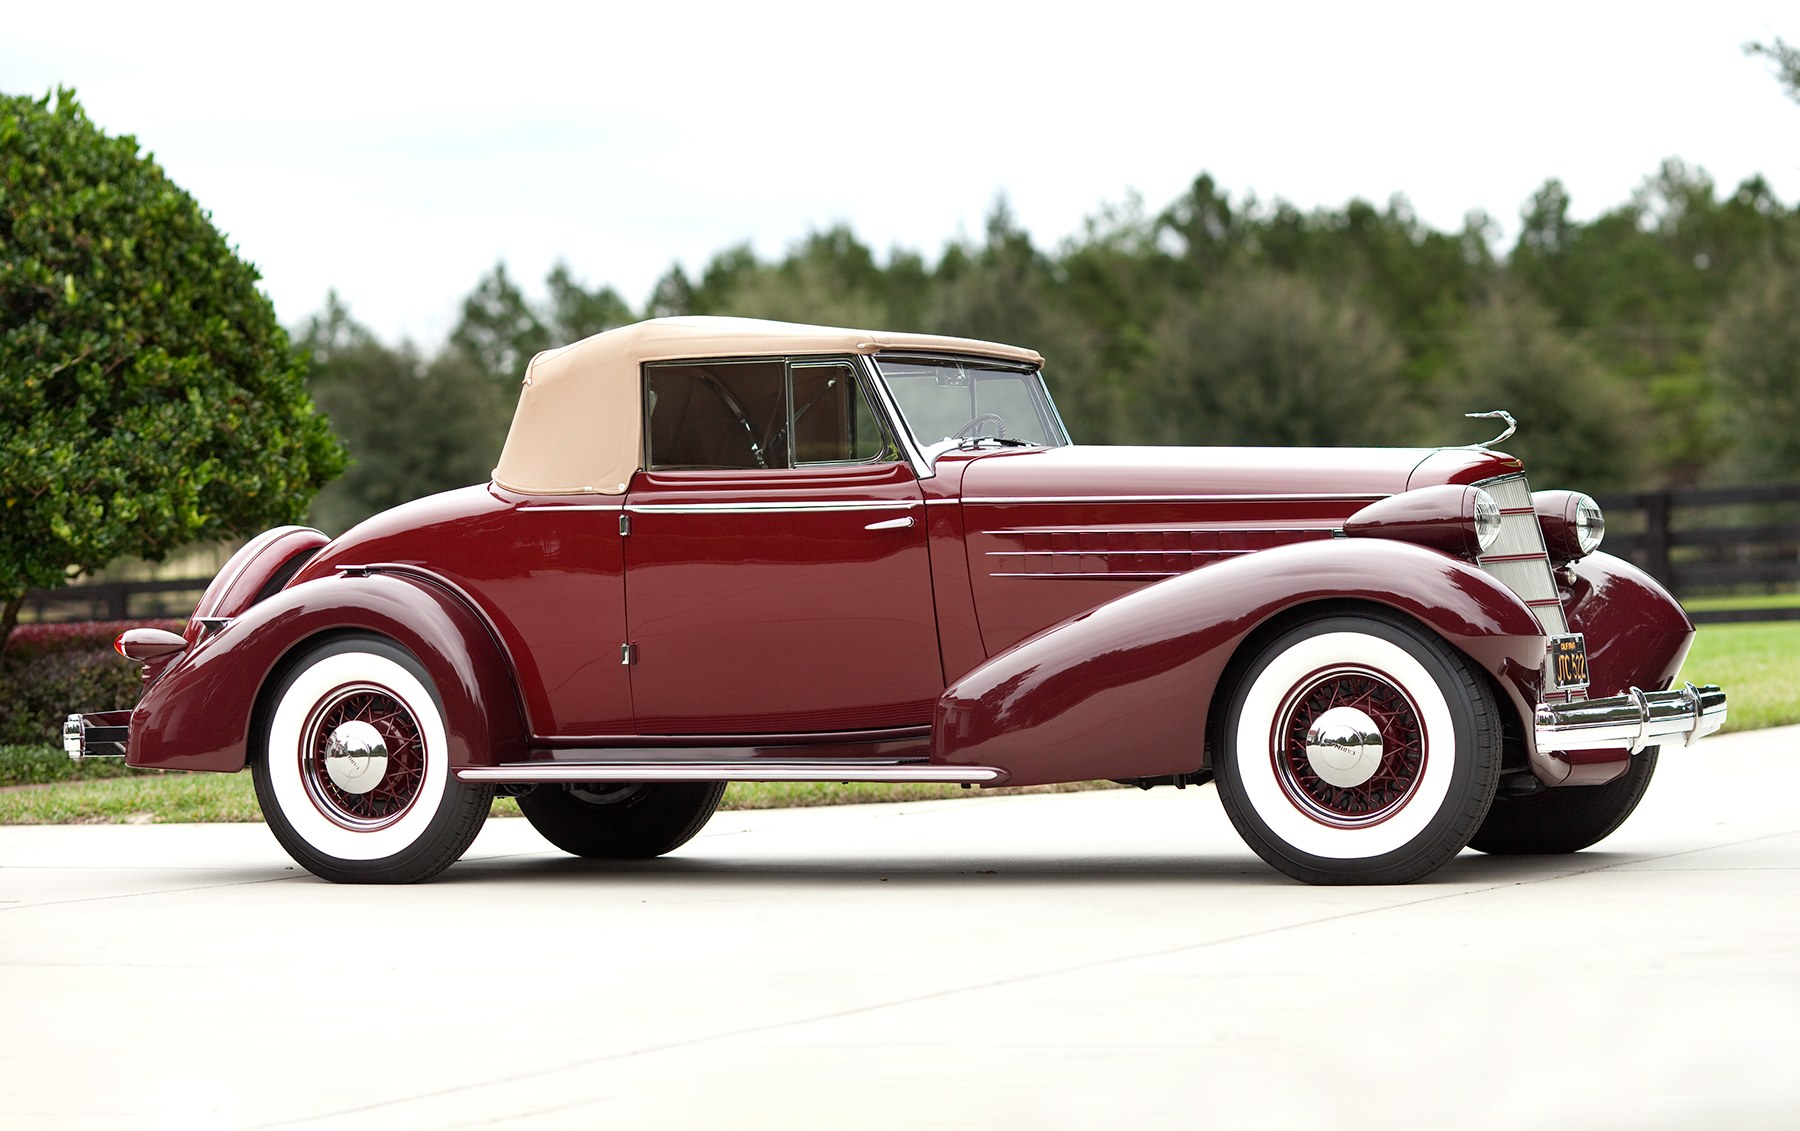 1934 Cadillac V-8 Model 355-D Series 10 Convertible Coupe